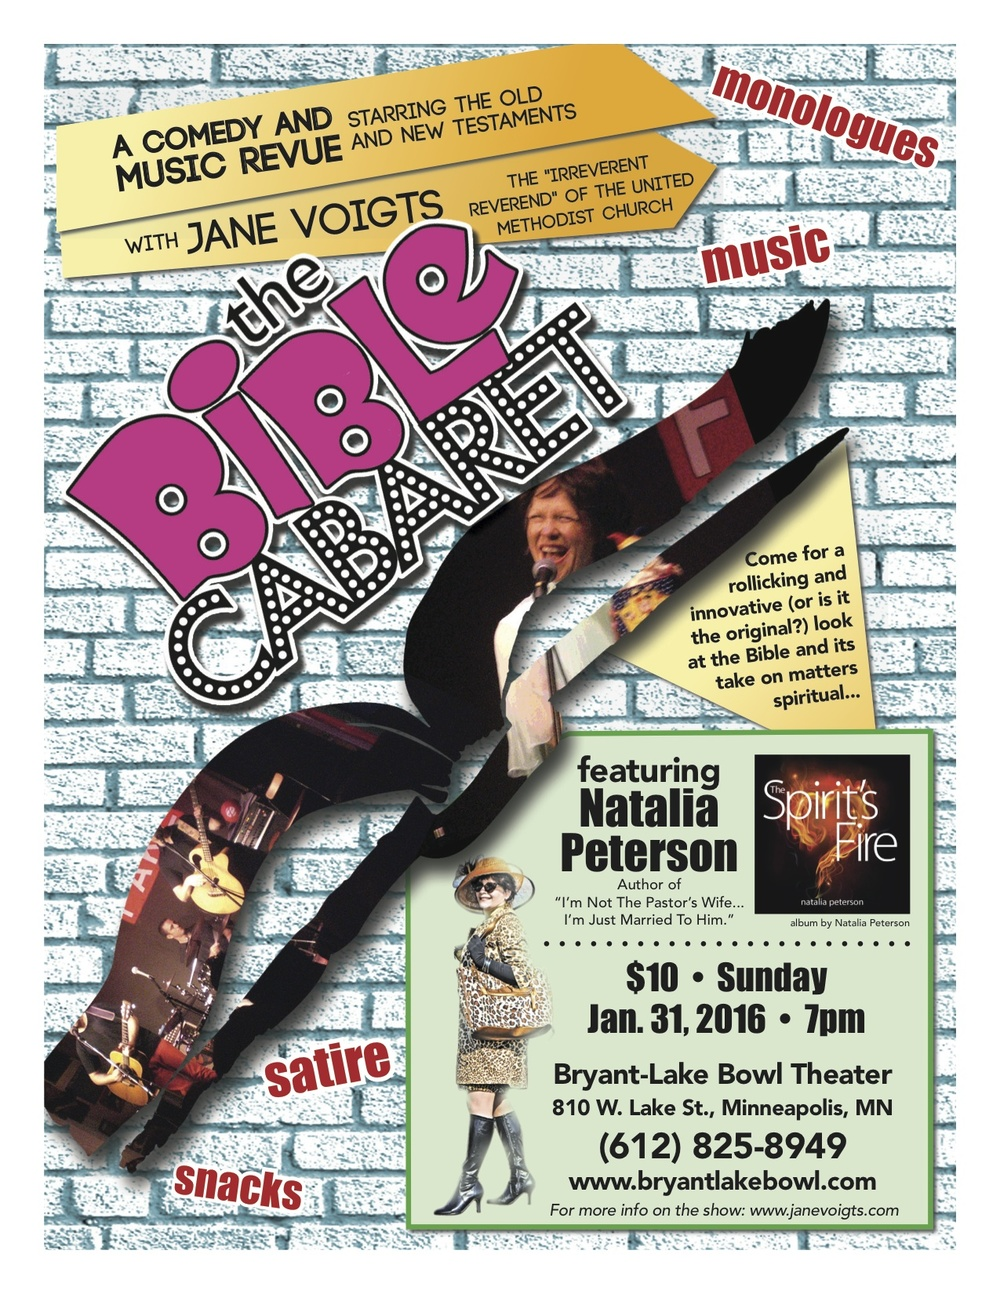 Bible Cabaret 8.5x11 Flyer 1-31 copy.jpg